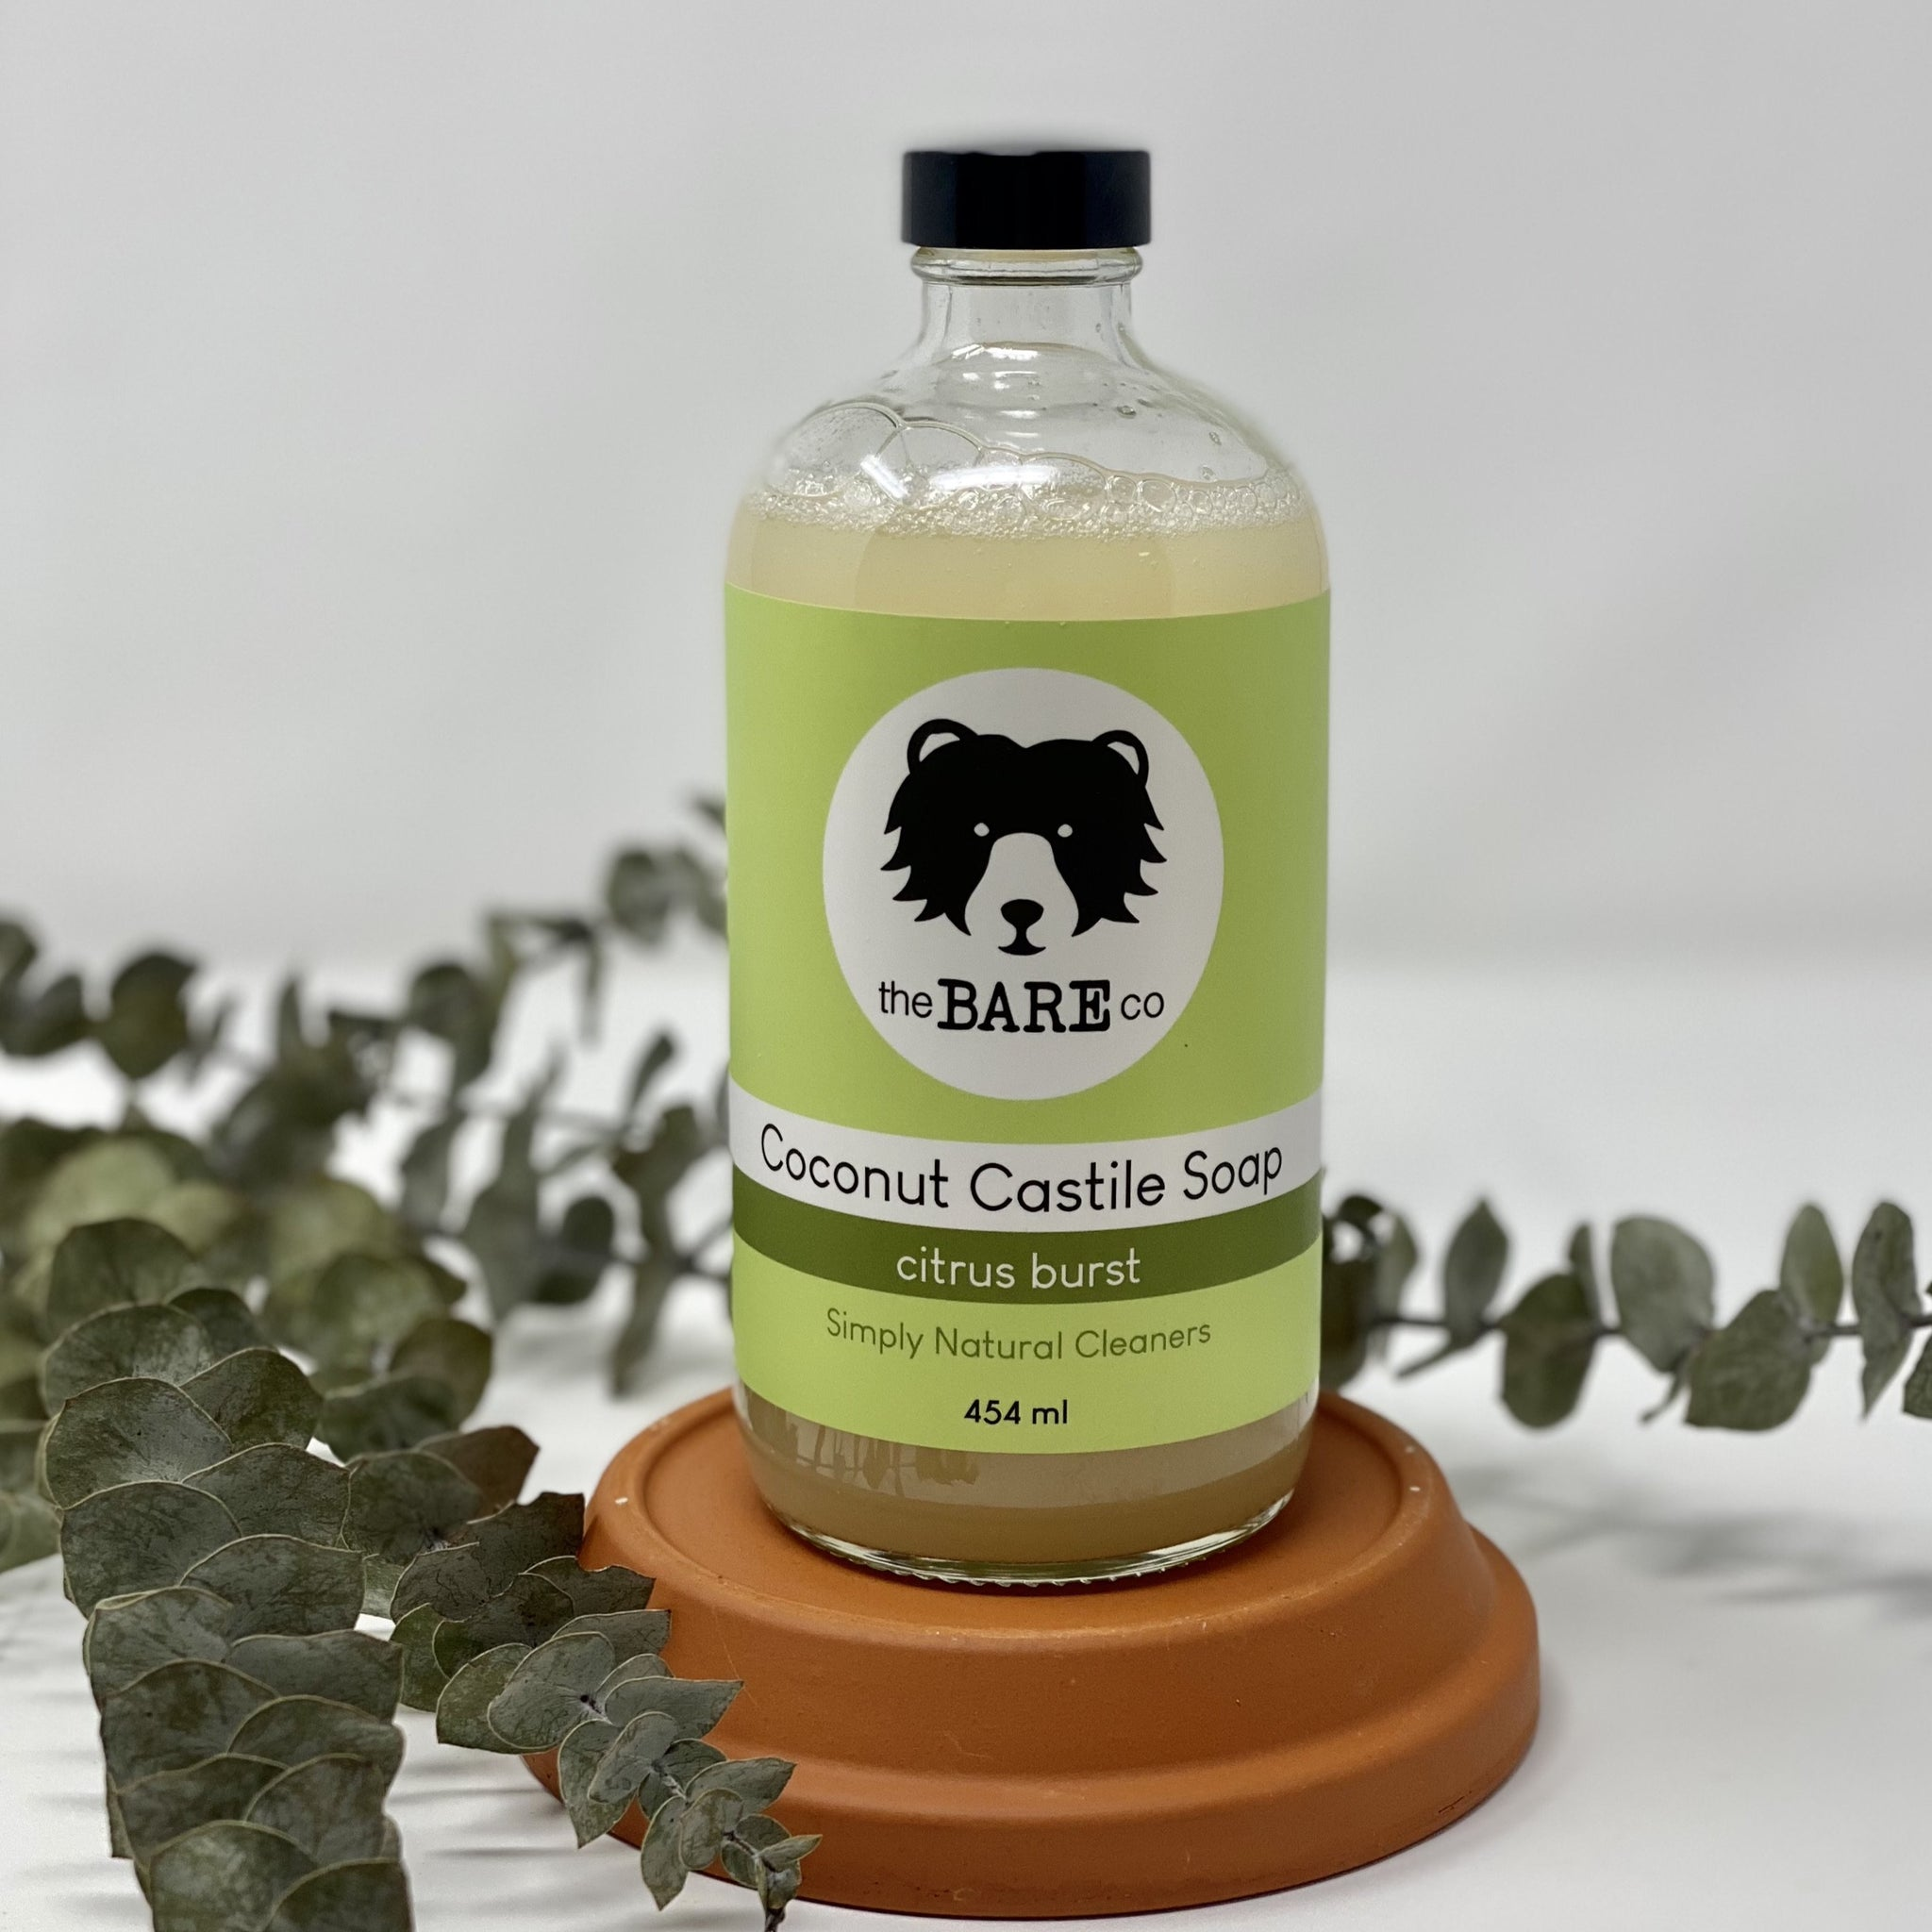 Coconut Castile Soap